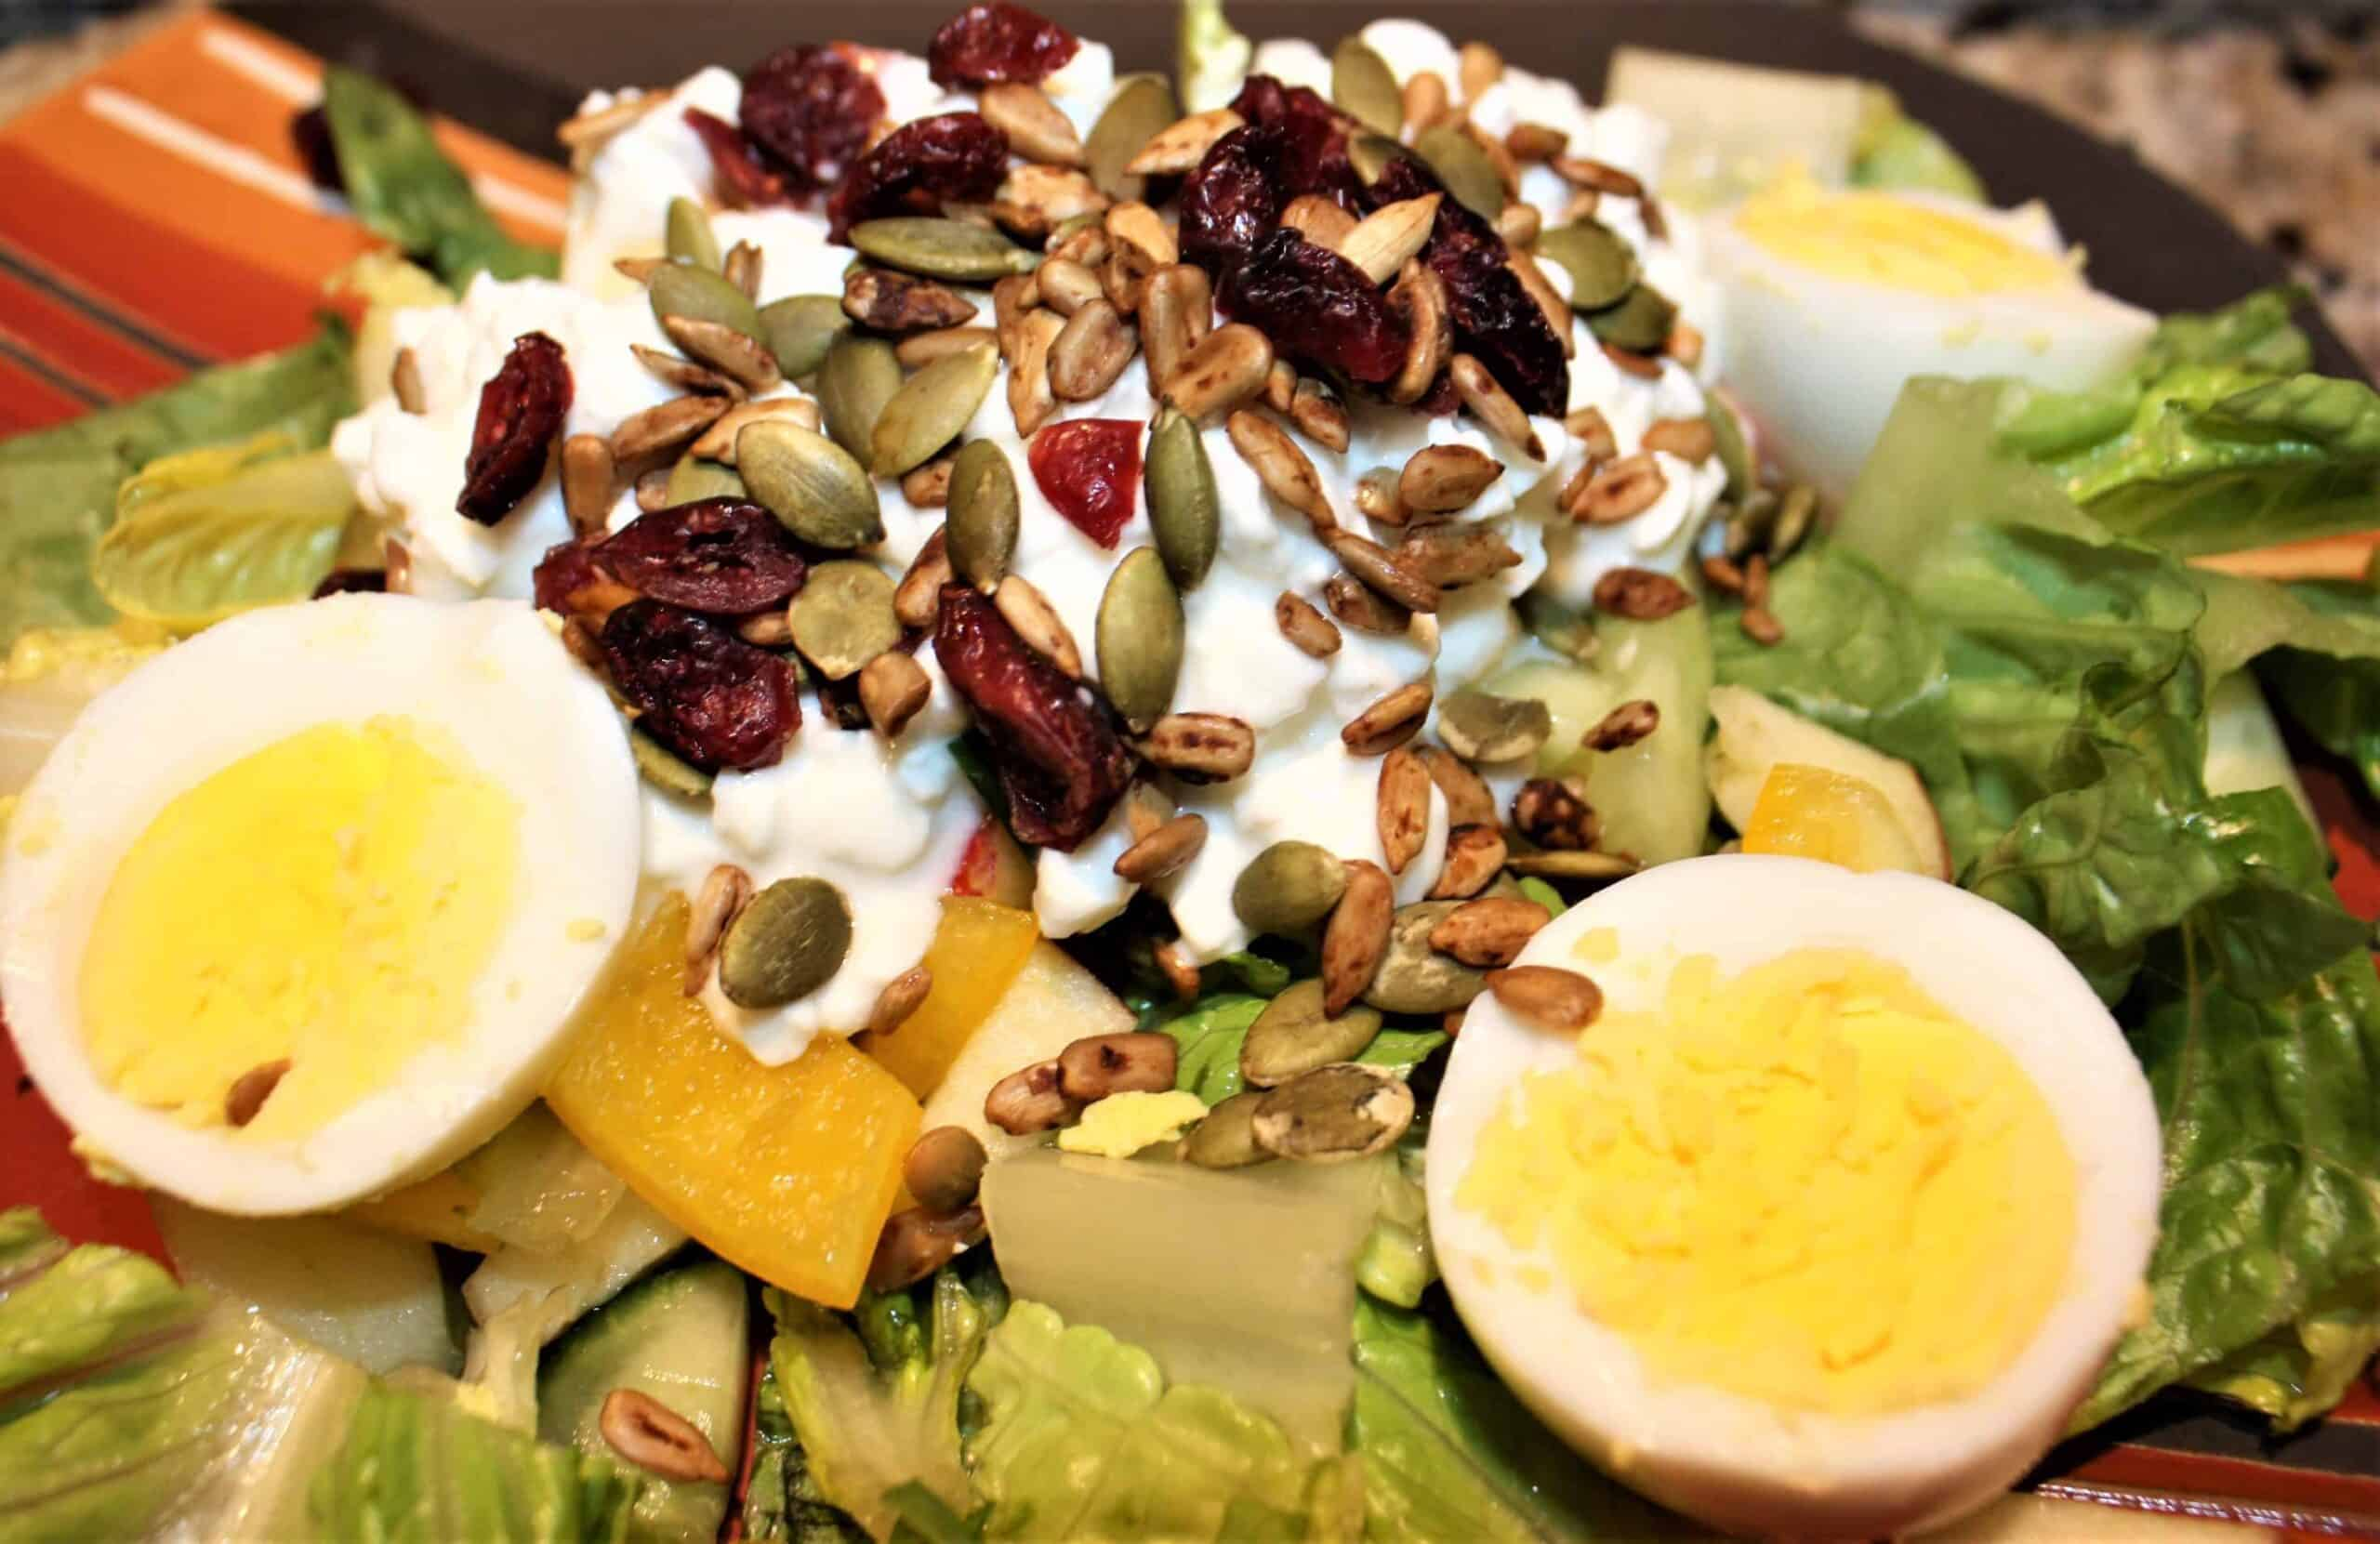 Click here to learn how to make IP hard-boiled eggs for salad